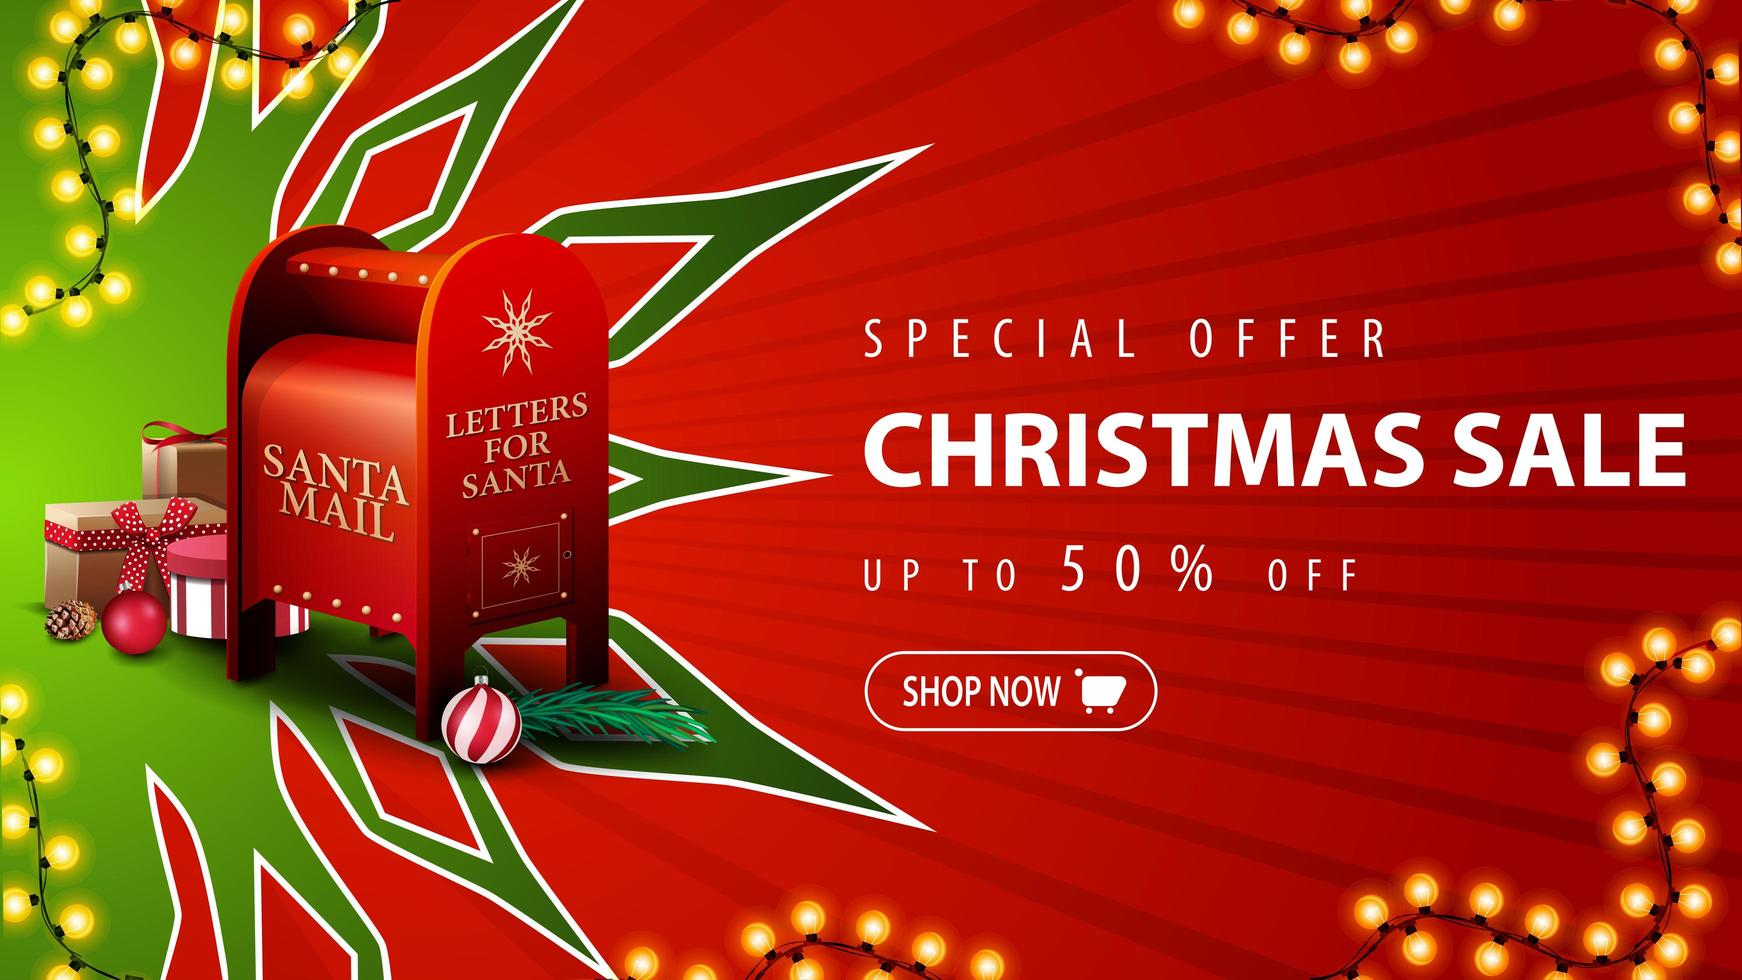 Special offer, Christmas sale, up to 50 off, red discount banner with big green snowflake and Santa letterbox with presents vector